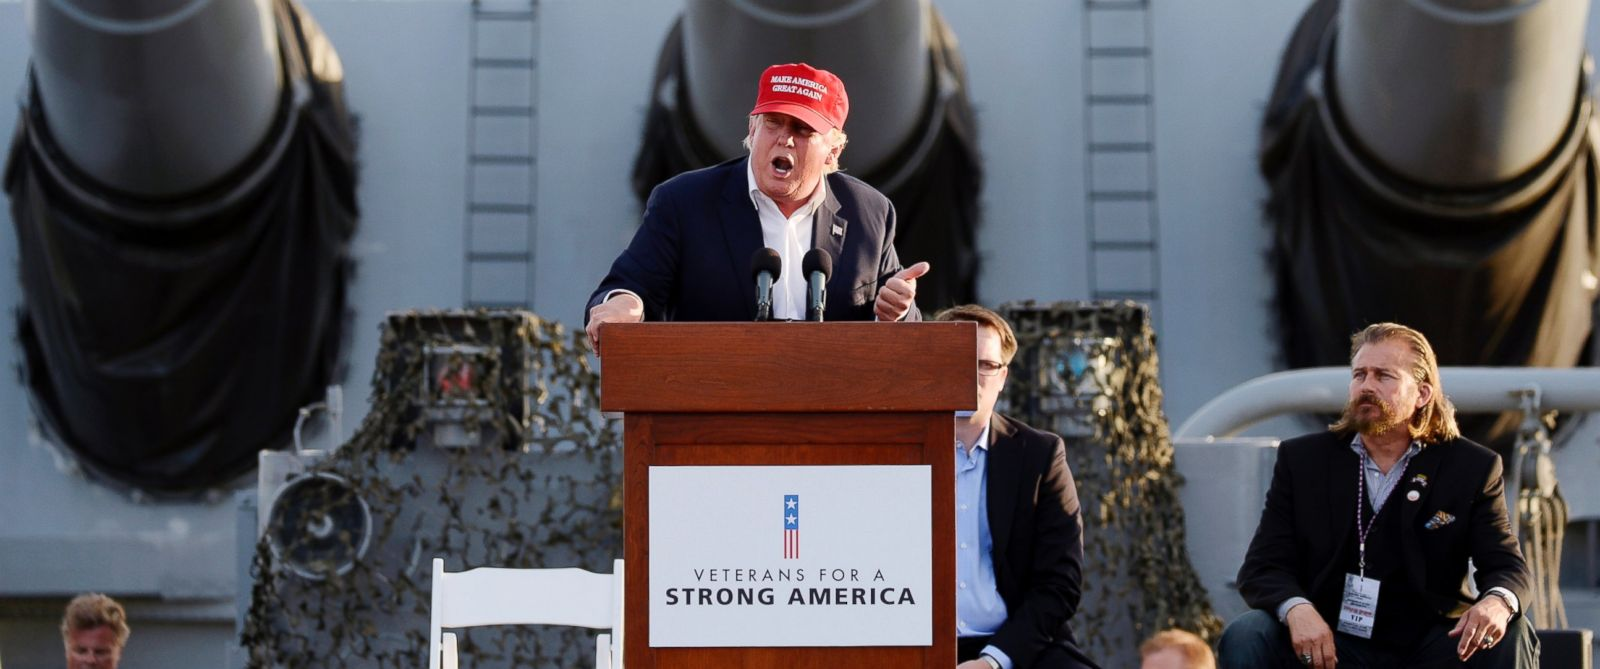 PHOTO: Republican presidential candidate Donald Trump speaks during a campaign event aboard the retired ship USS Iowa in Los Angeles on Tuesday, Sept. 15, 2015.